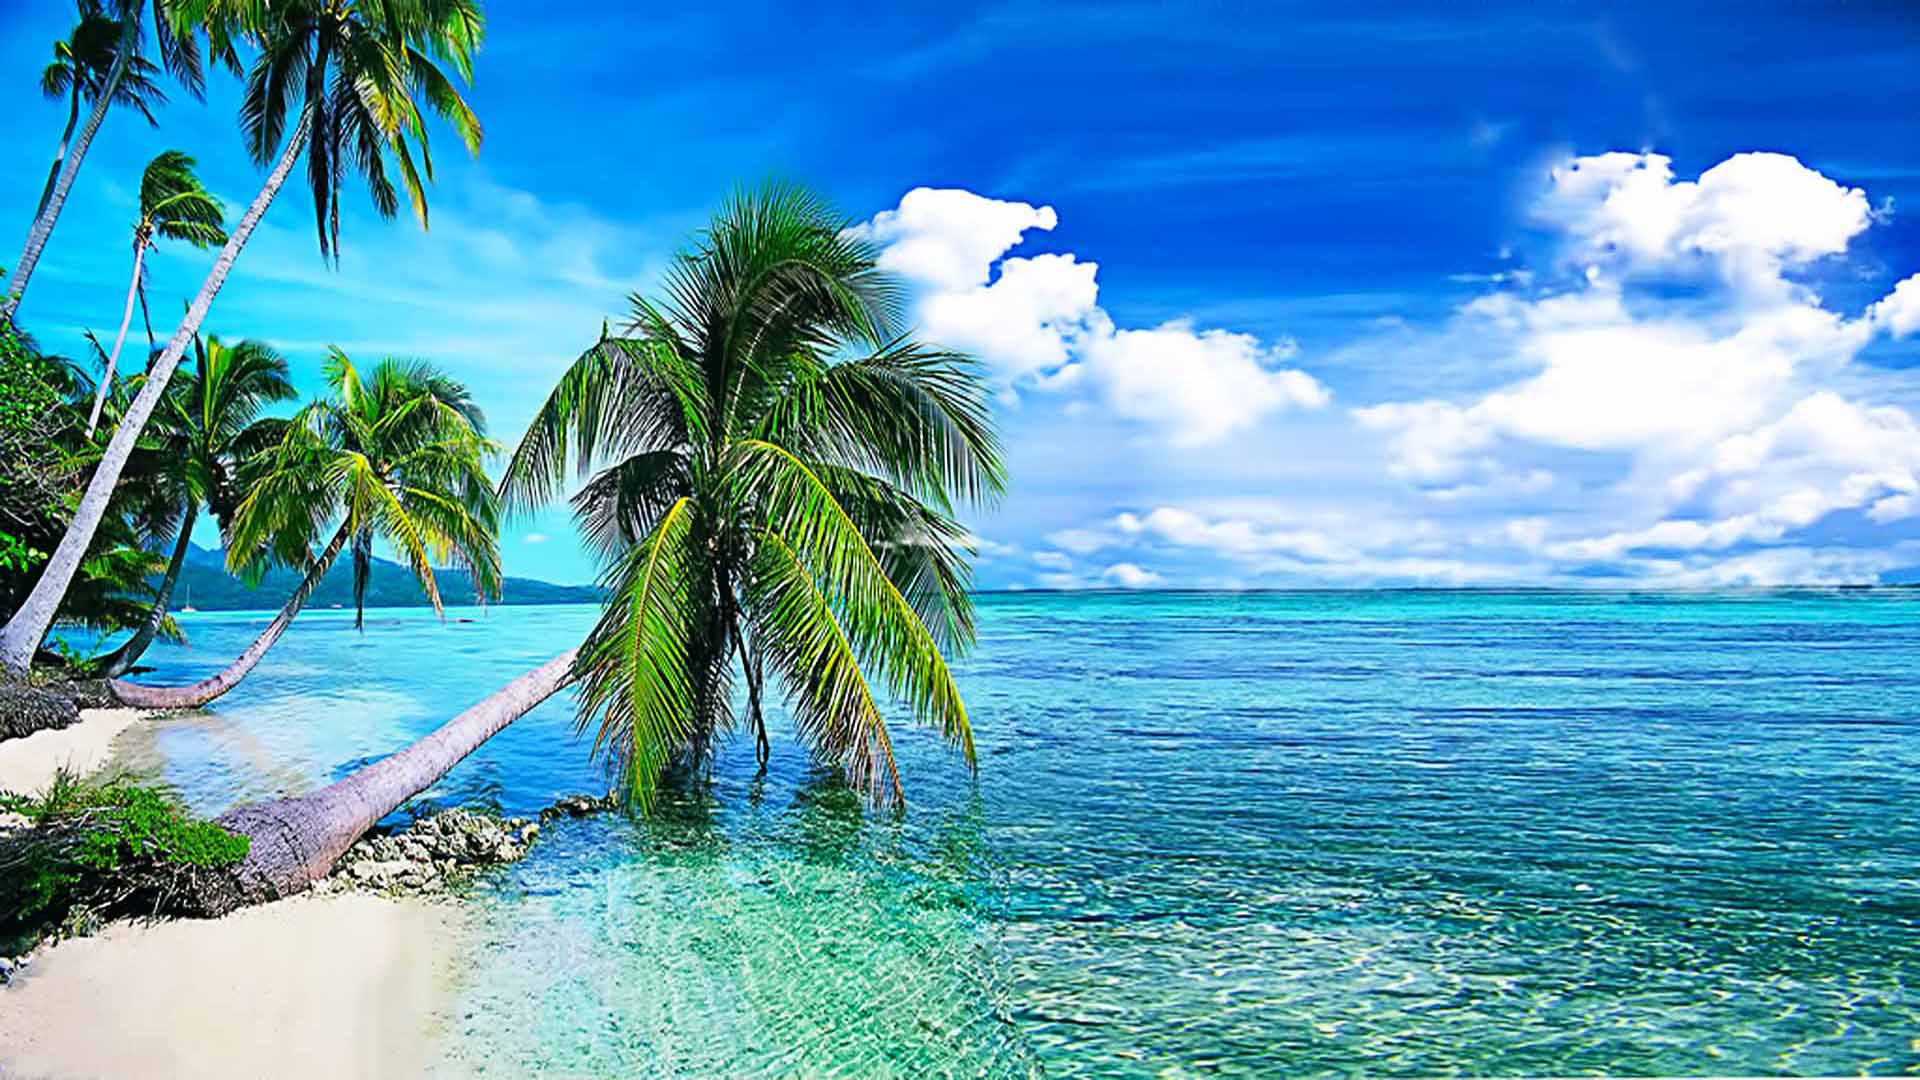 Hd Tropical Island Beach Paradise Wallpapers And Backgrounds: [74+] Tropical Desktop Wallpaper Free On WallpaperSafari